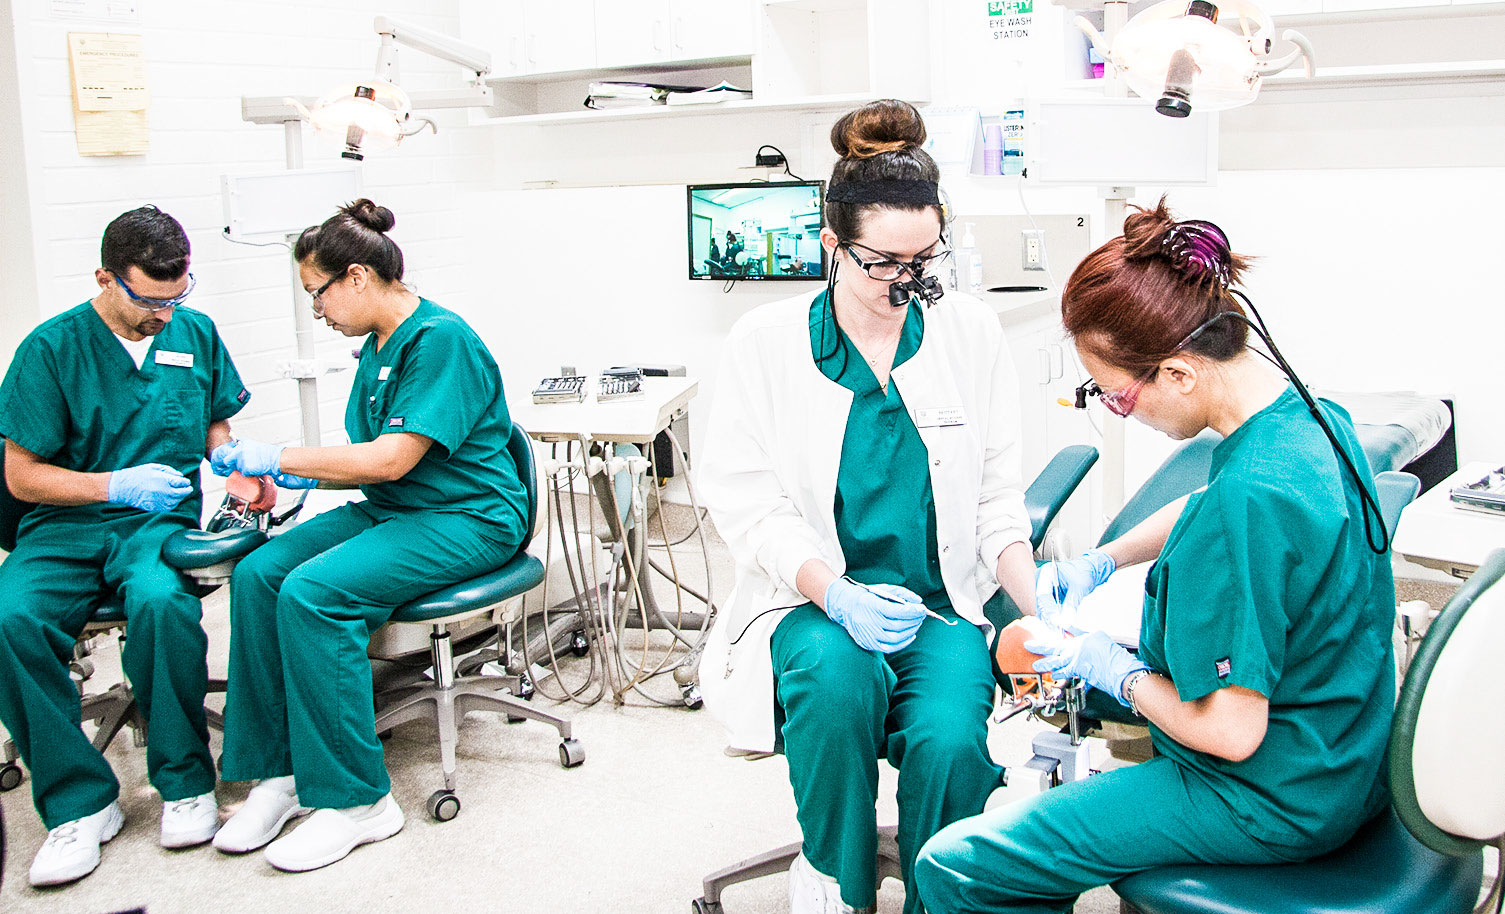 Students get pracitcal training during a denal hygiene class.